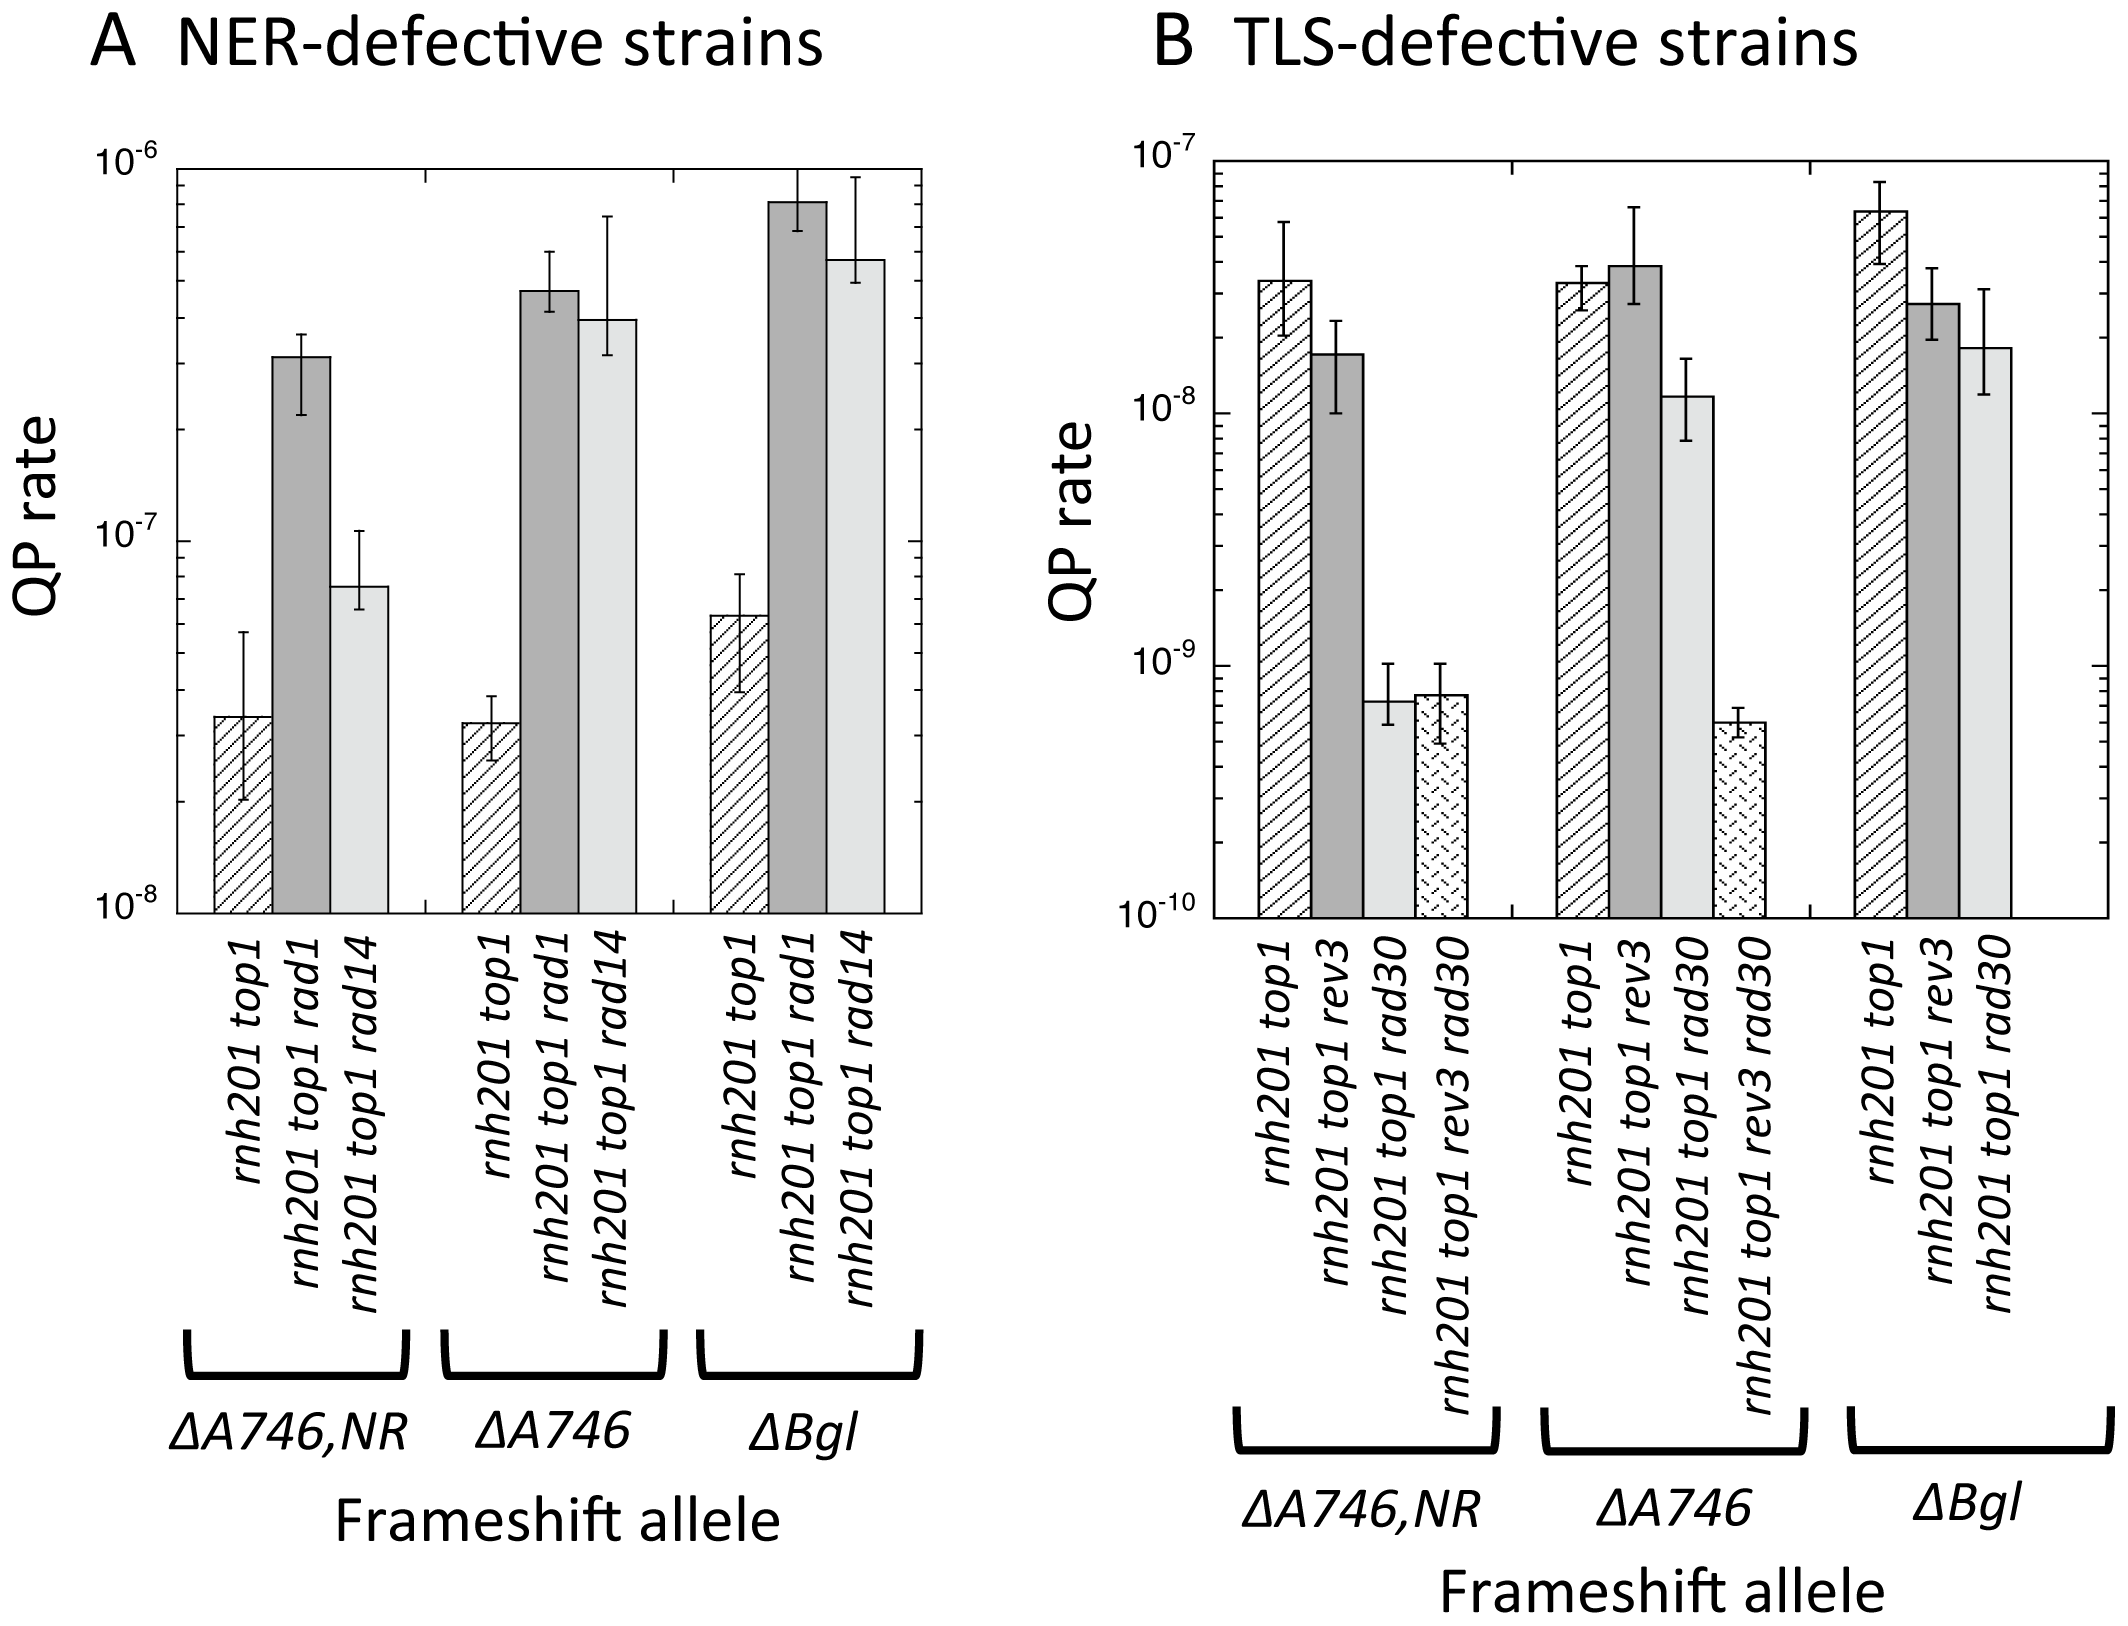 Rates of QP mutations and tandem-repeat deletions at hotspots in NER- or TLS-defective strains.